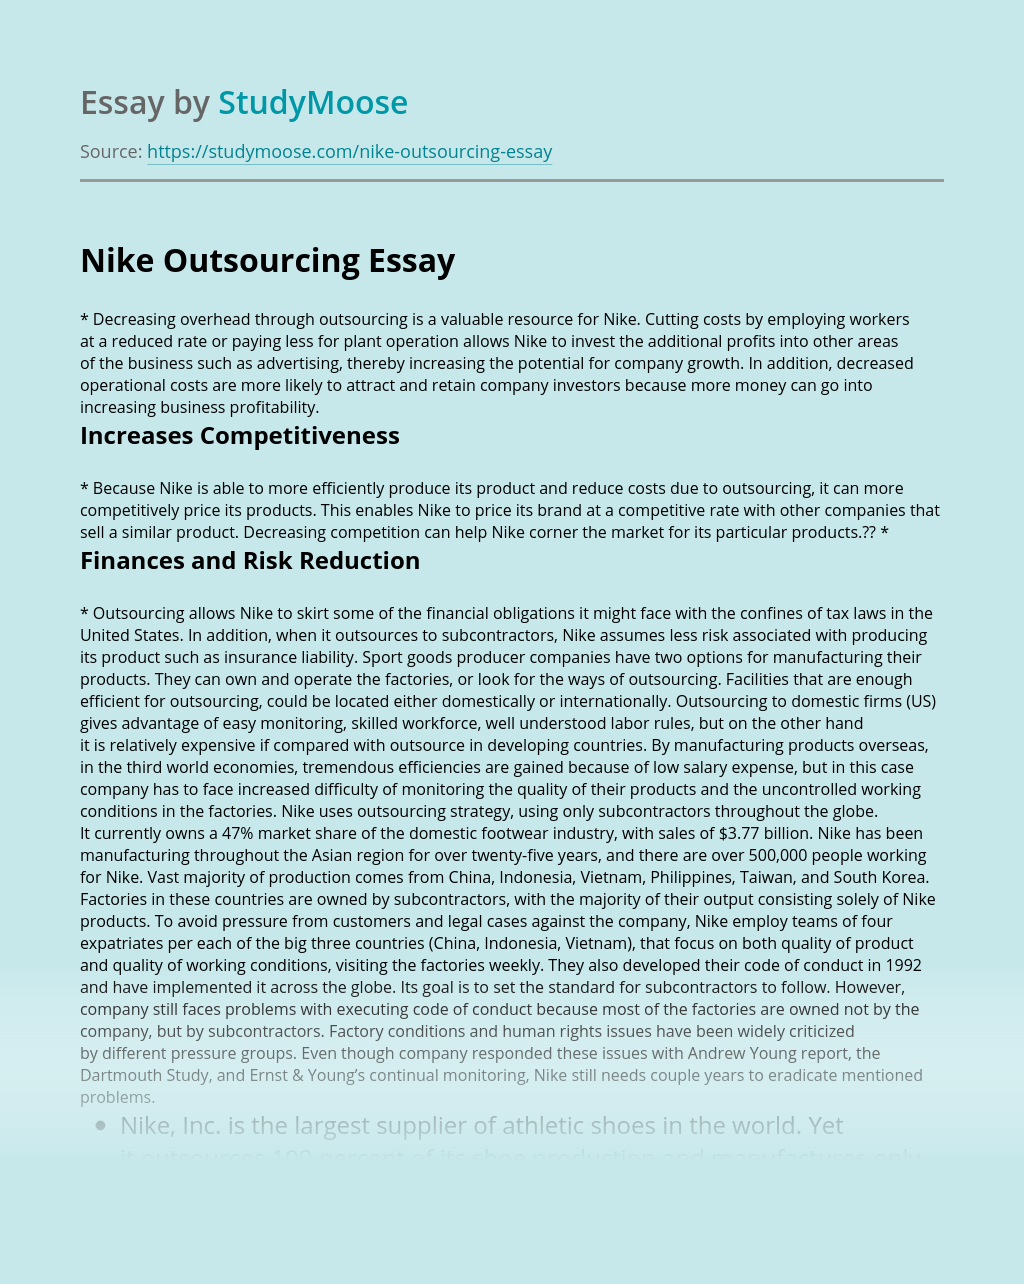 nike outsourcing